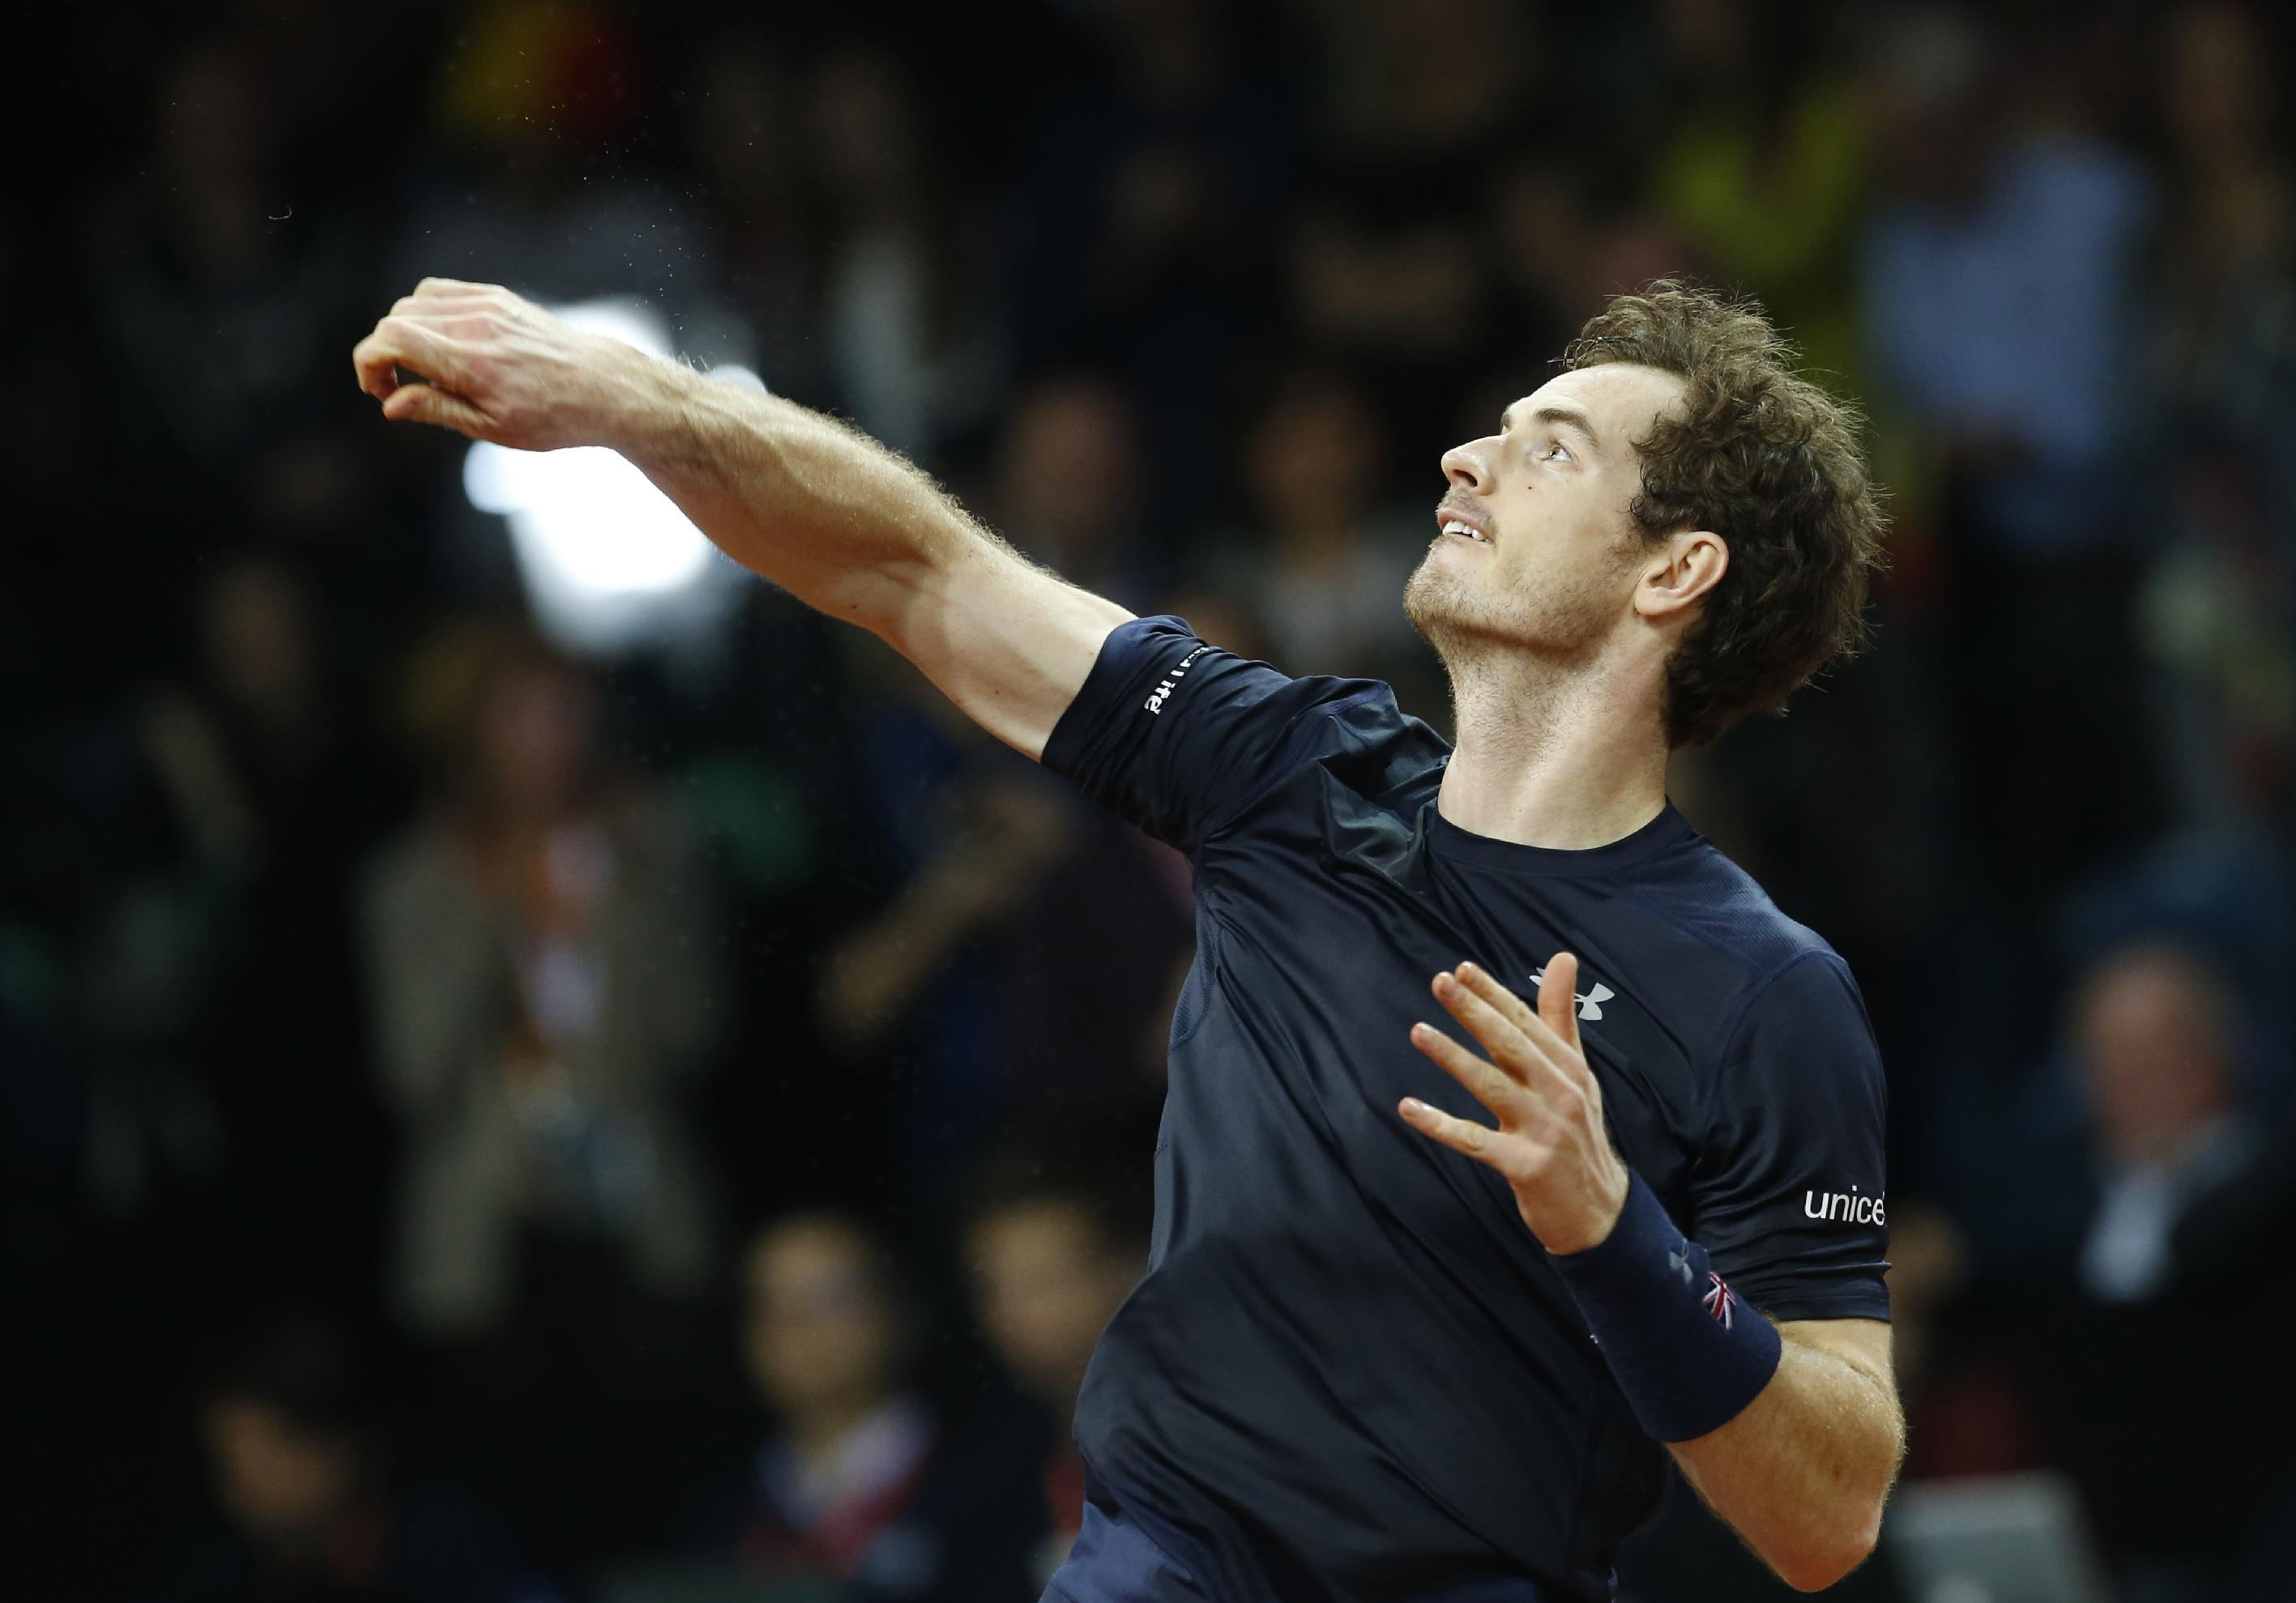 DAVIS CUP: It's official, Great Britain are a one man team